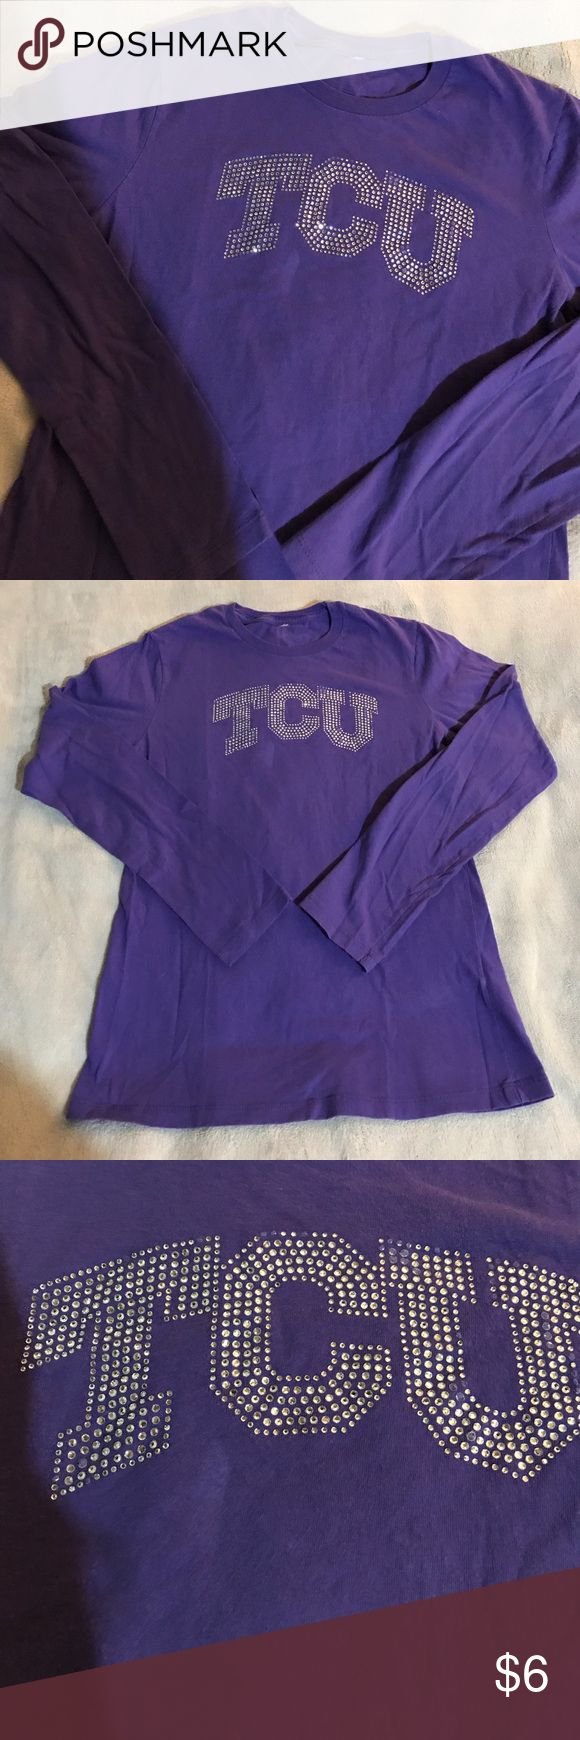 Used TCU long sleeve shirt Very cheap because diamonds are coming off. Easily replaced if you are arts and crafty. Size small tag came off Tops Tees - Long Sleeve